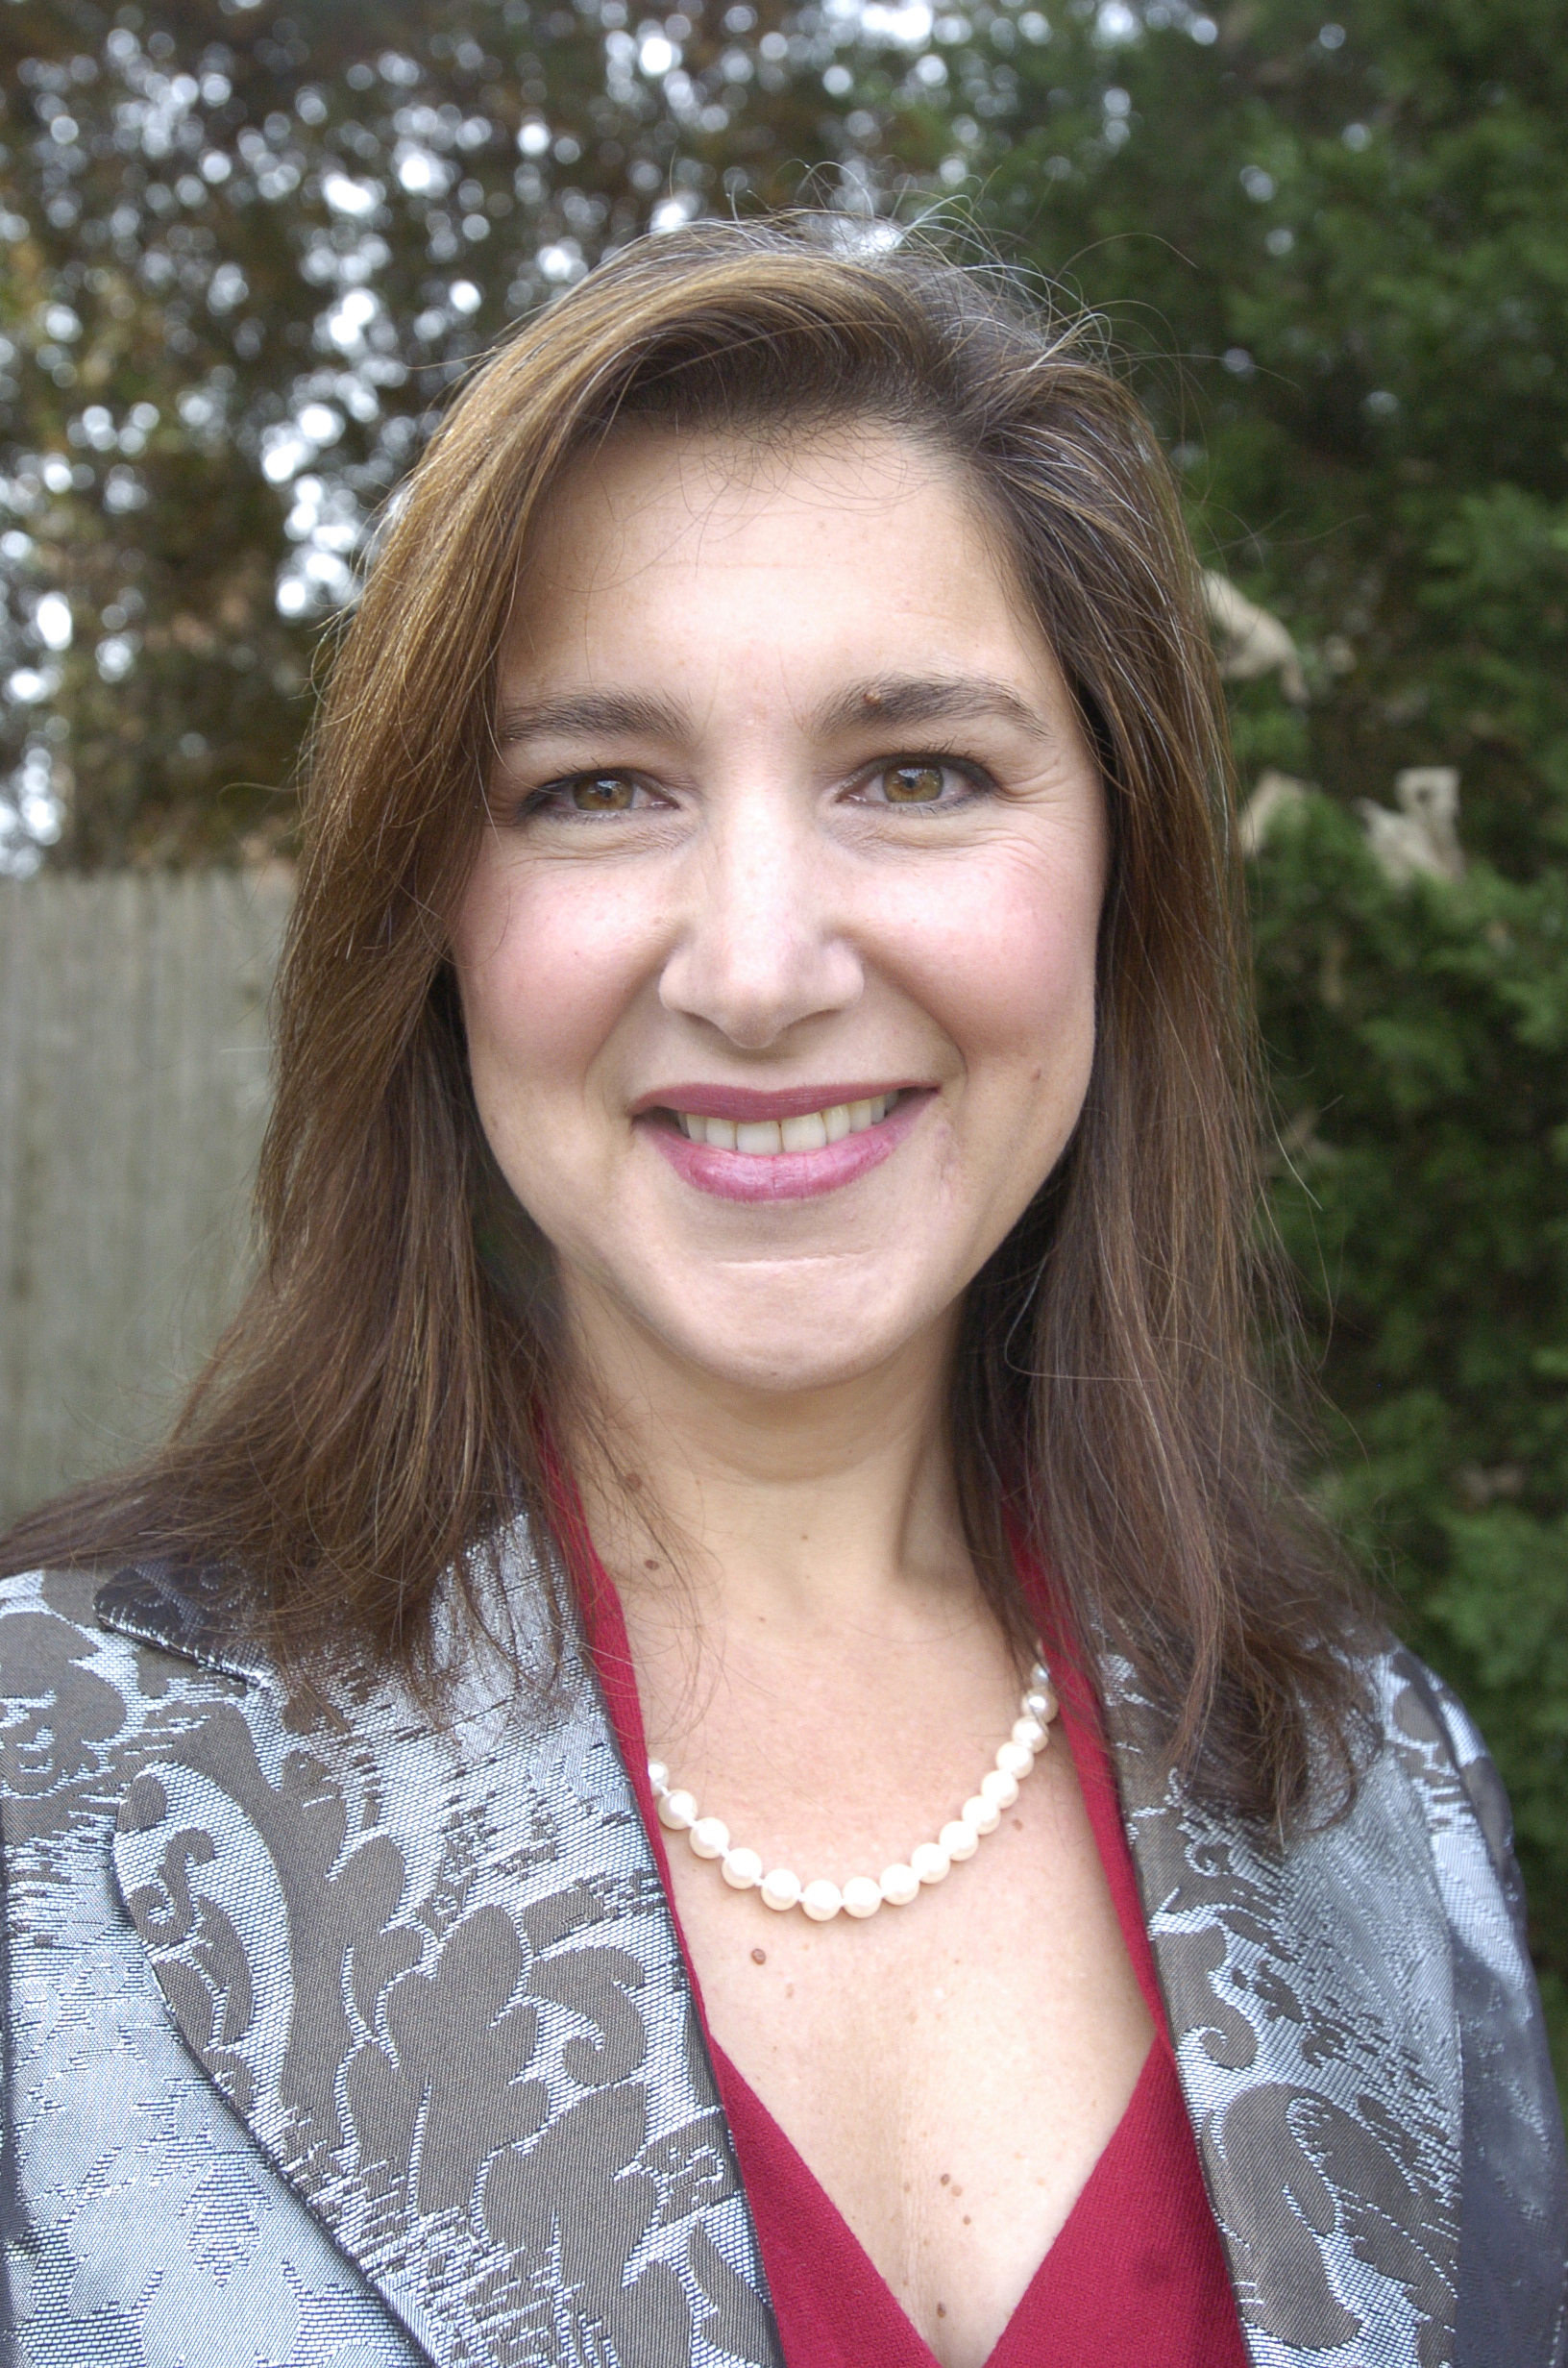 Southampton Town Justice Andrea Schiavoni was recently elected to serve as a Suffolk County Family Court judge. GREG WEHNER